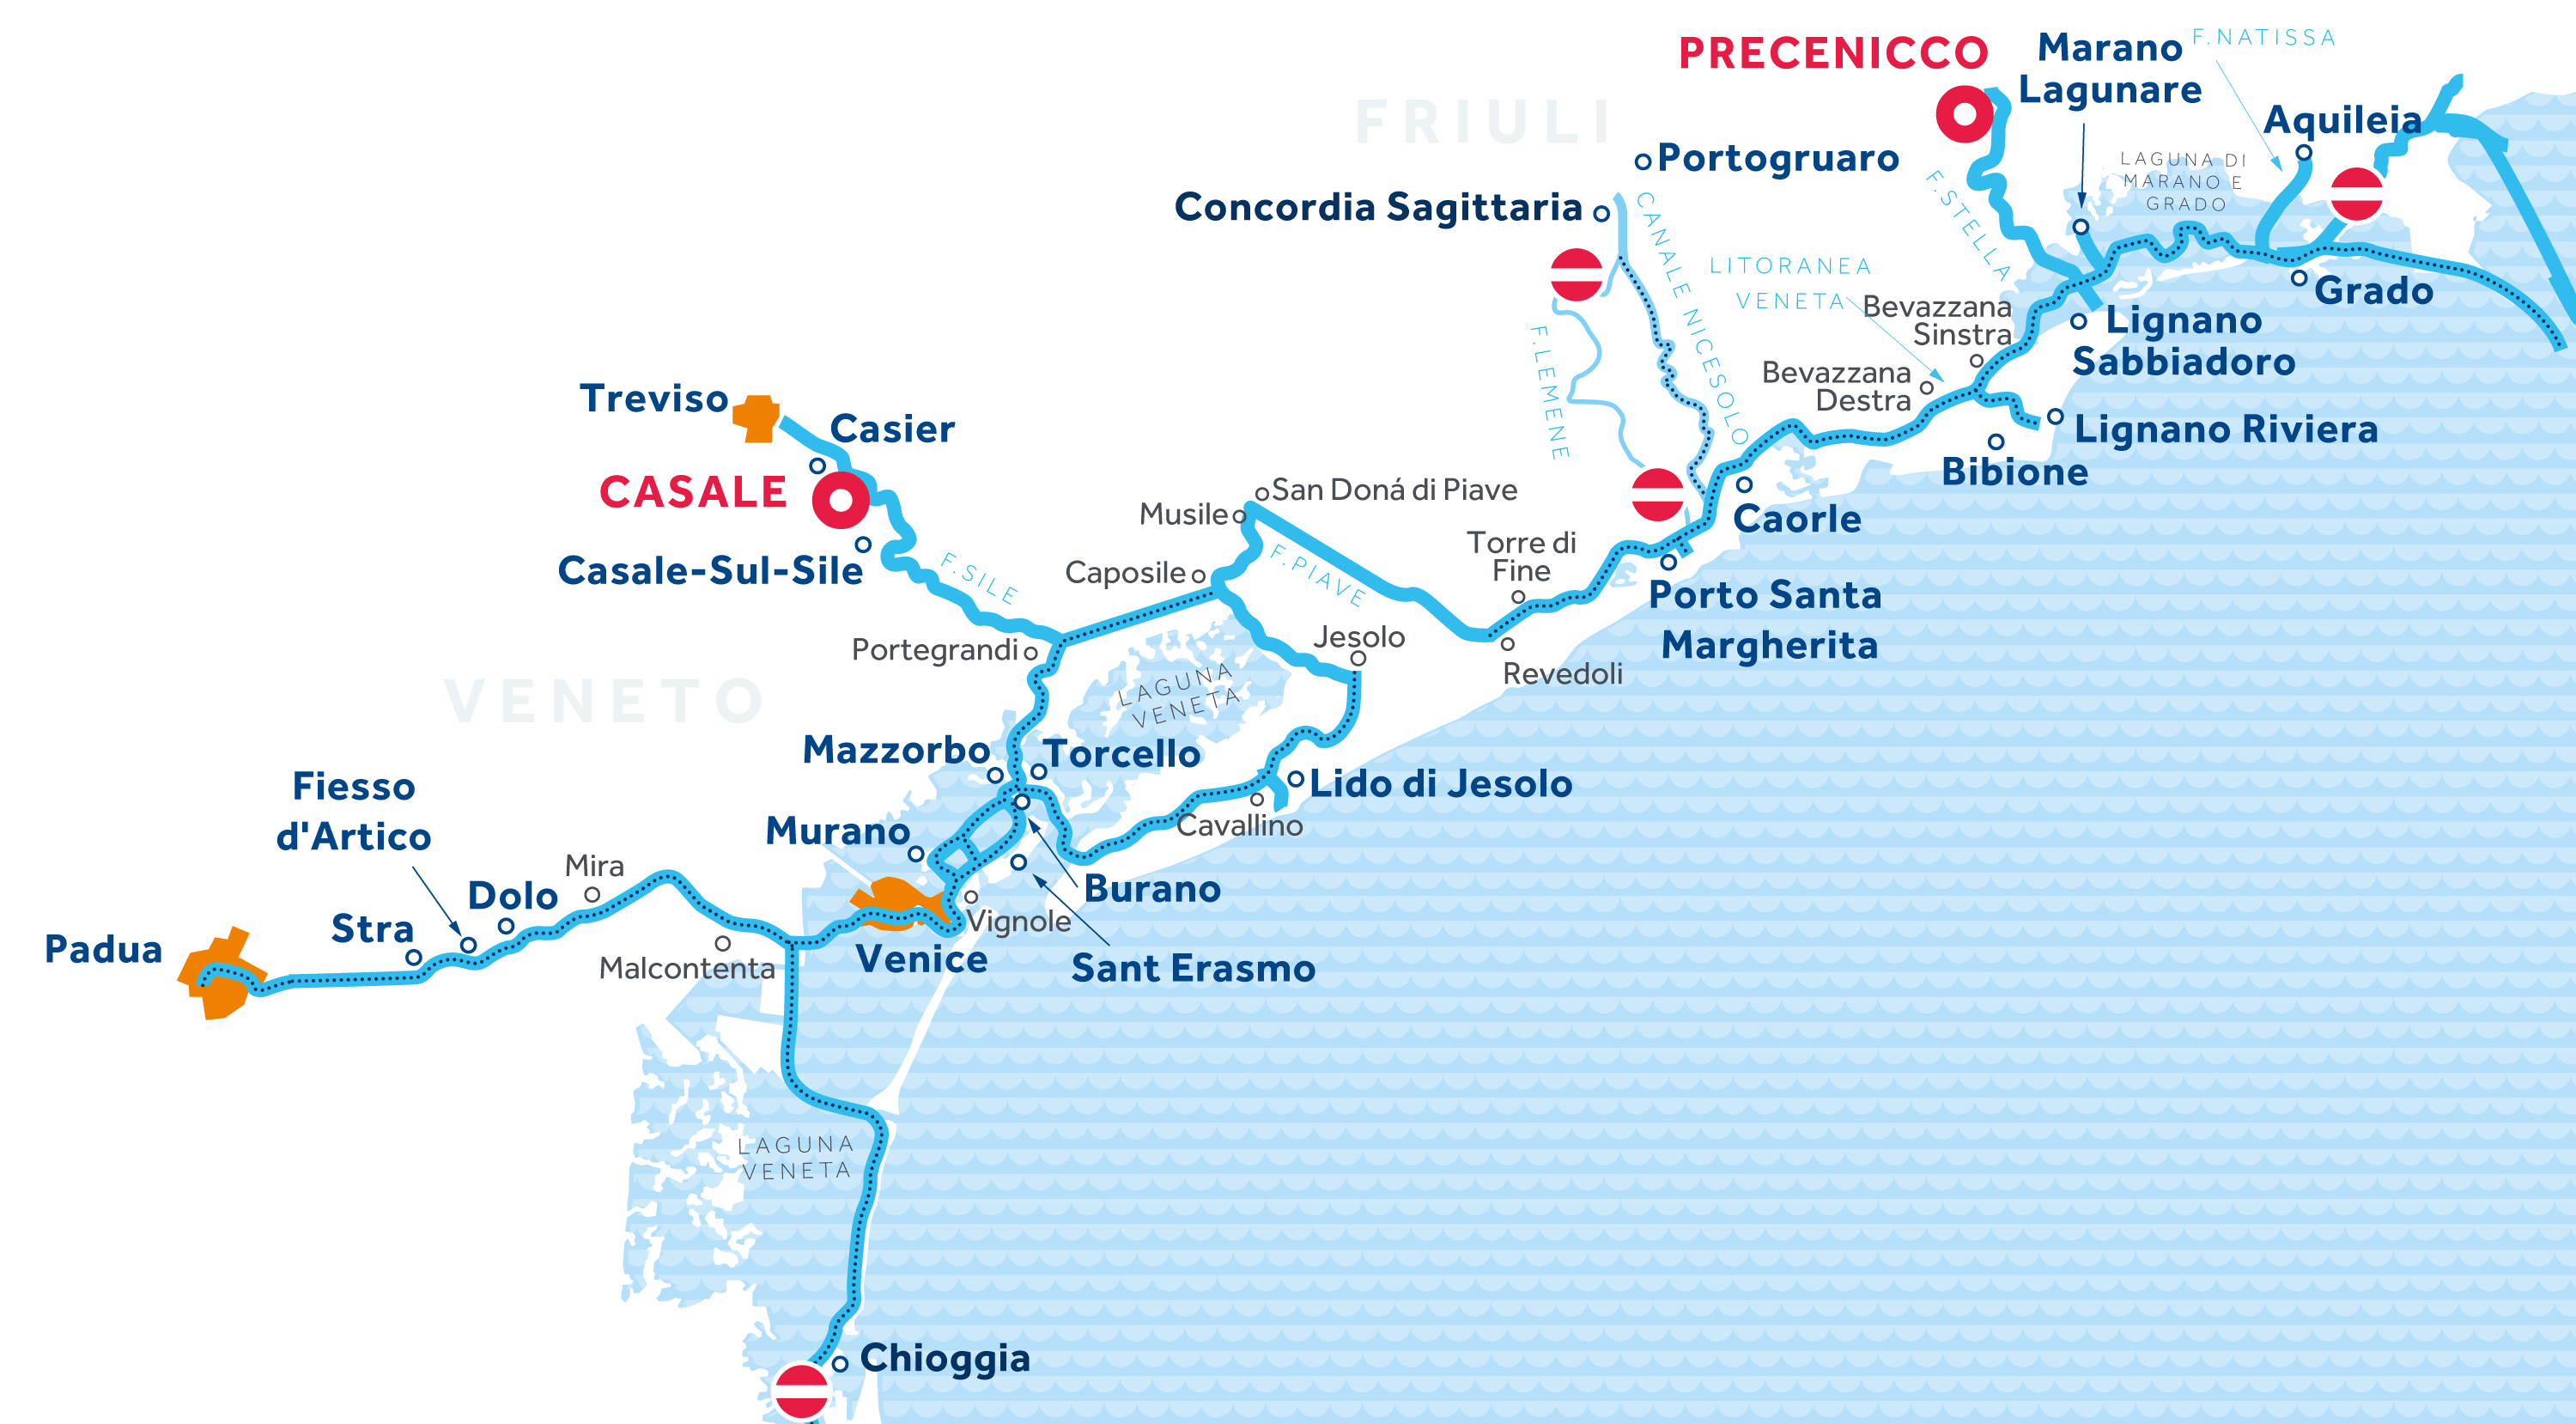 Venice and Friuli Region map